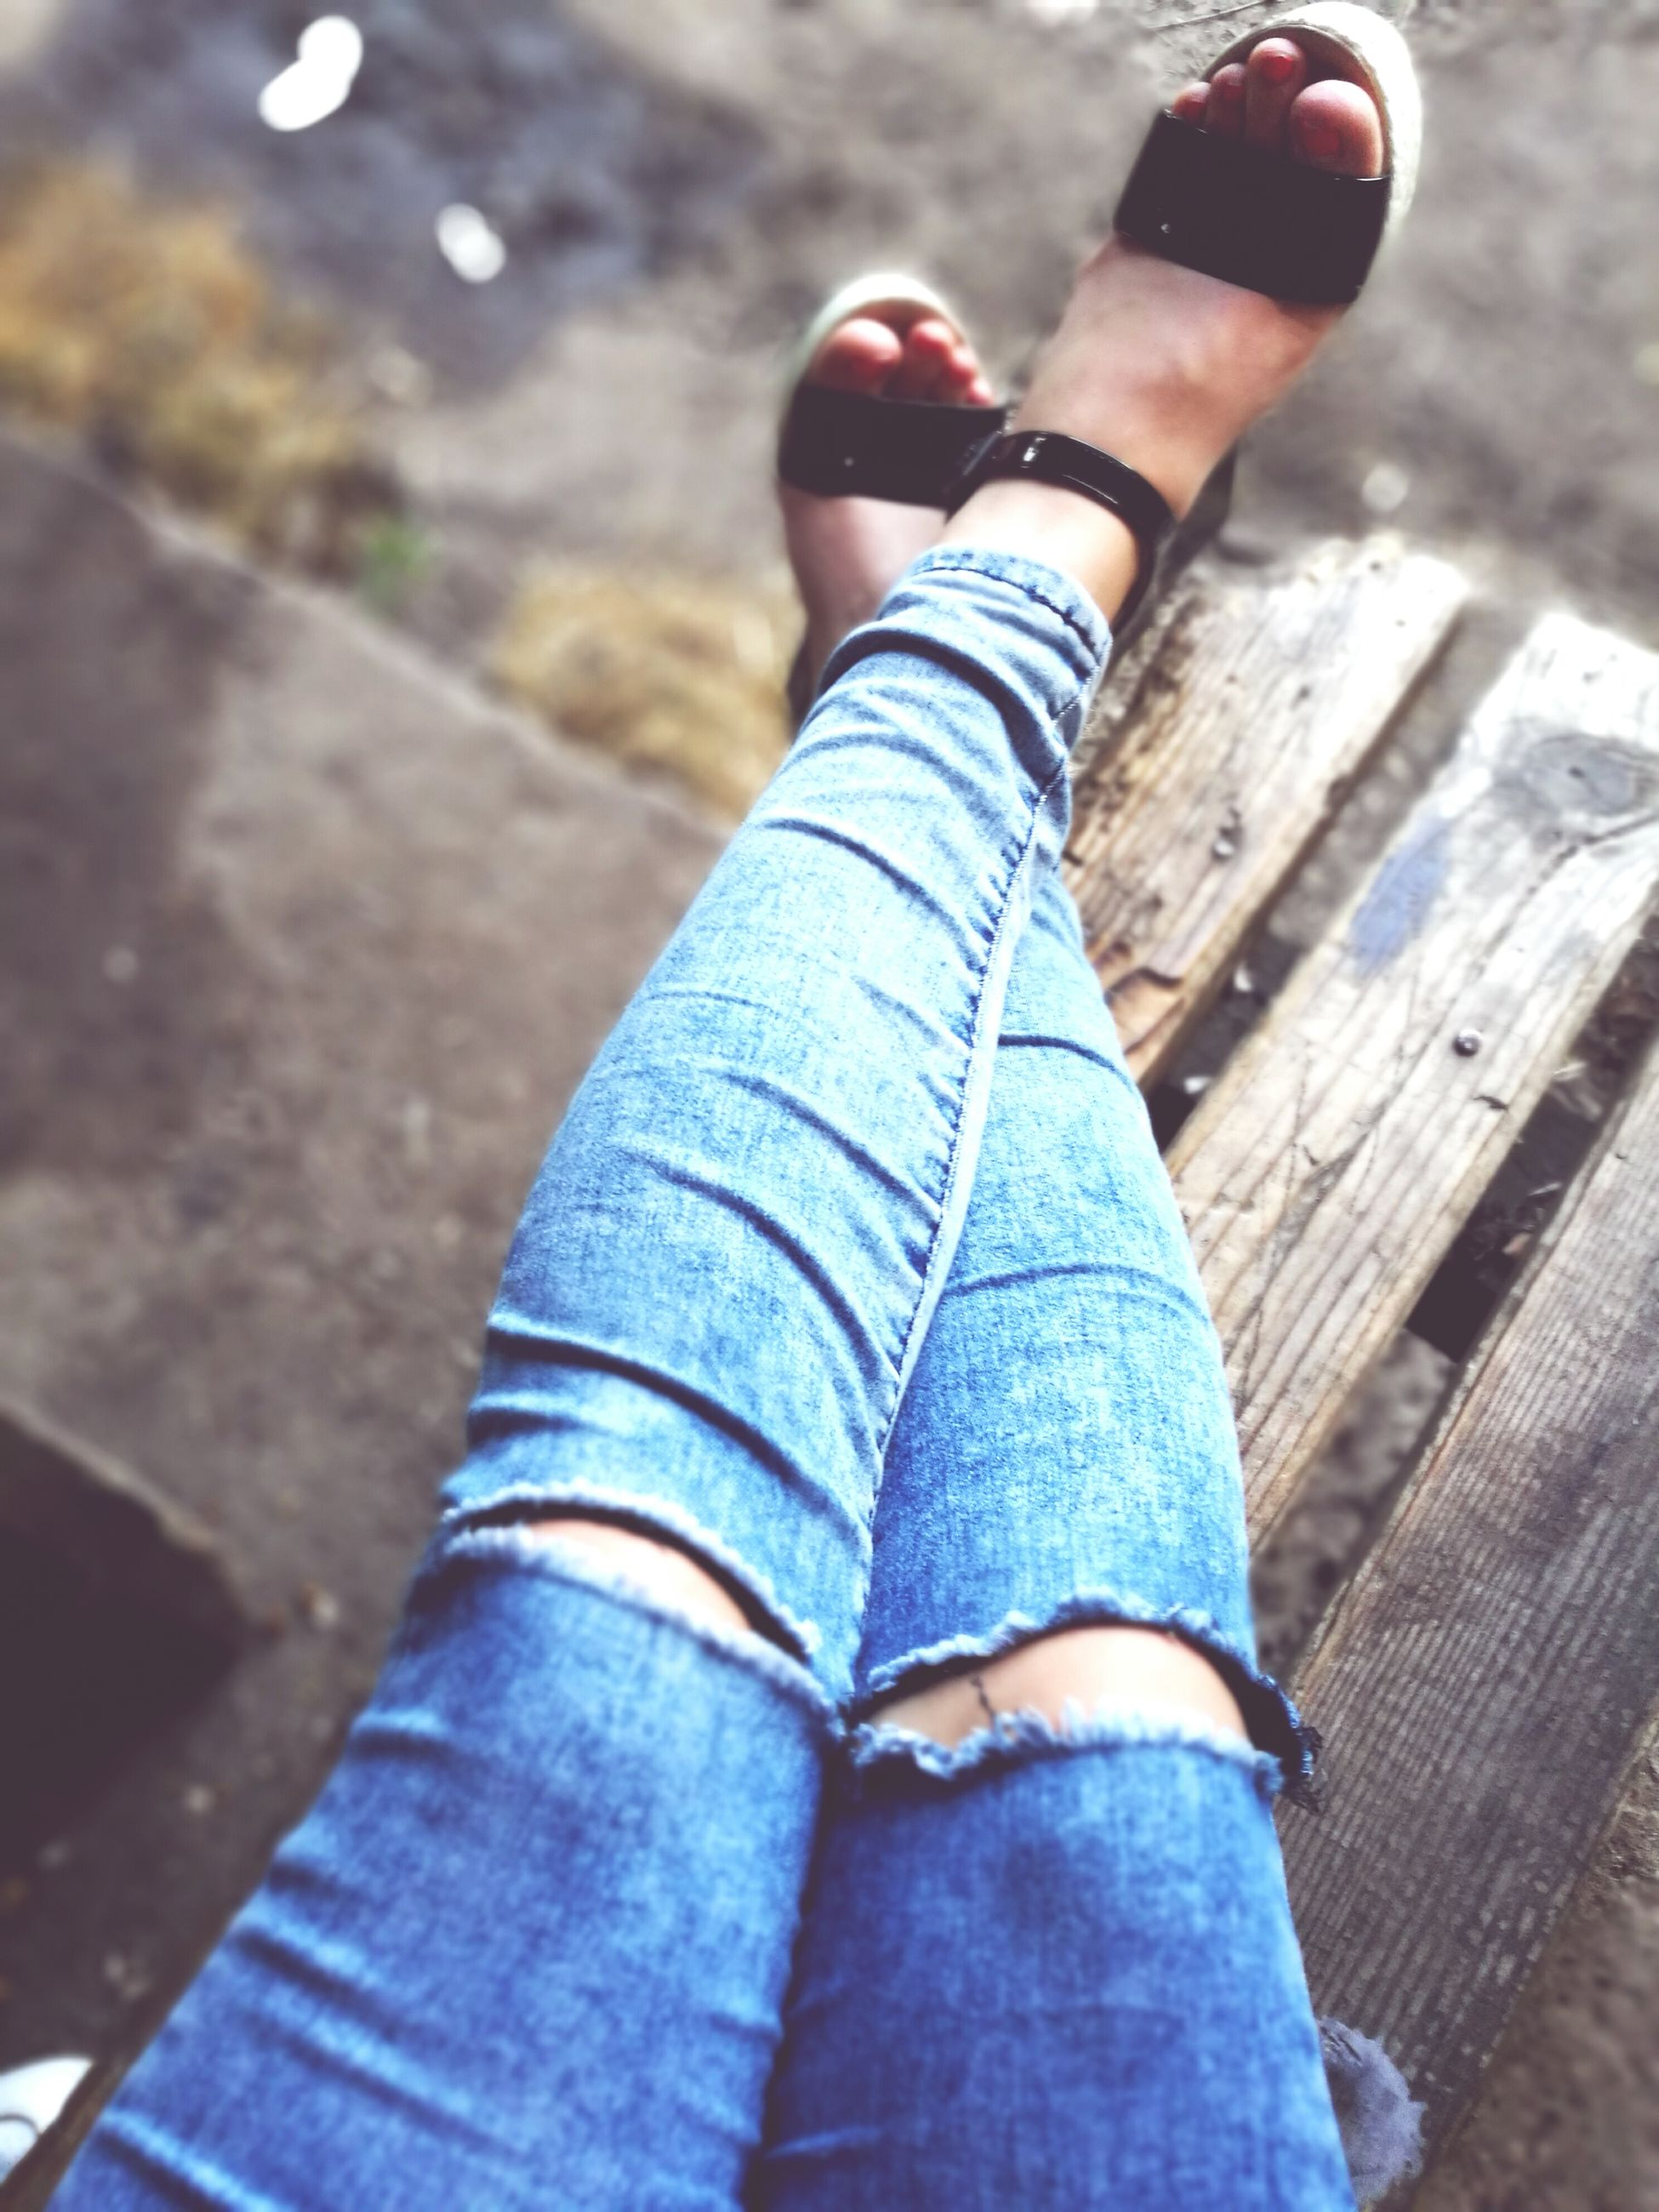 low section, person, shoe, personal perspective, jeans, lifestyles, standing, human foot, men, part of, leisure activity, footwear, wood - material, blue, close-up, unrecognizable person, casual clothing